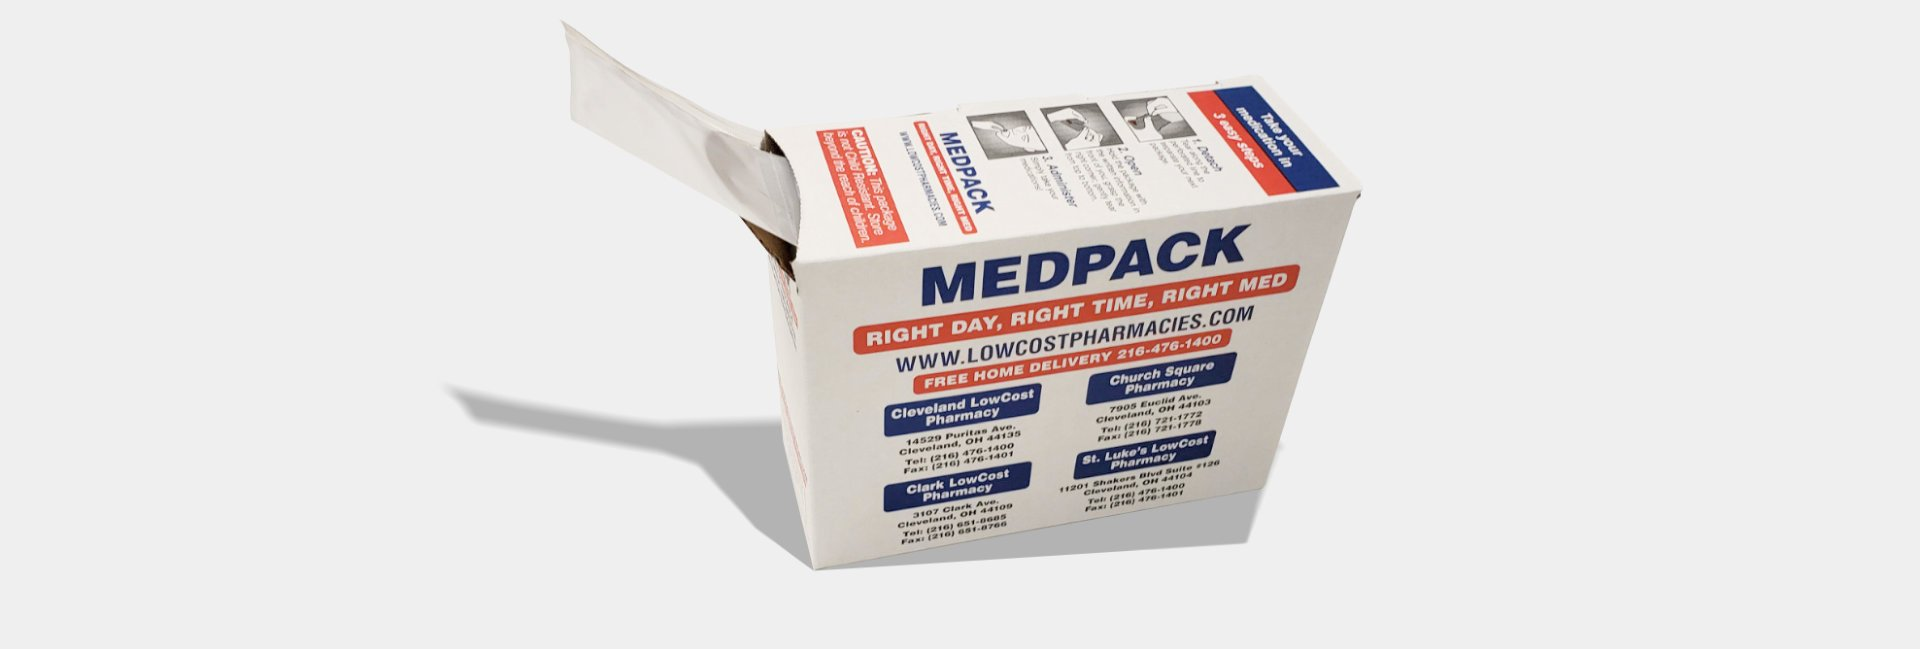 Mepack Box zoomed